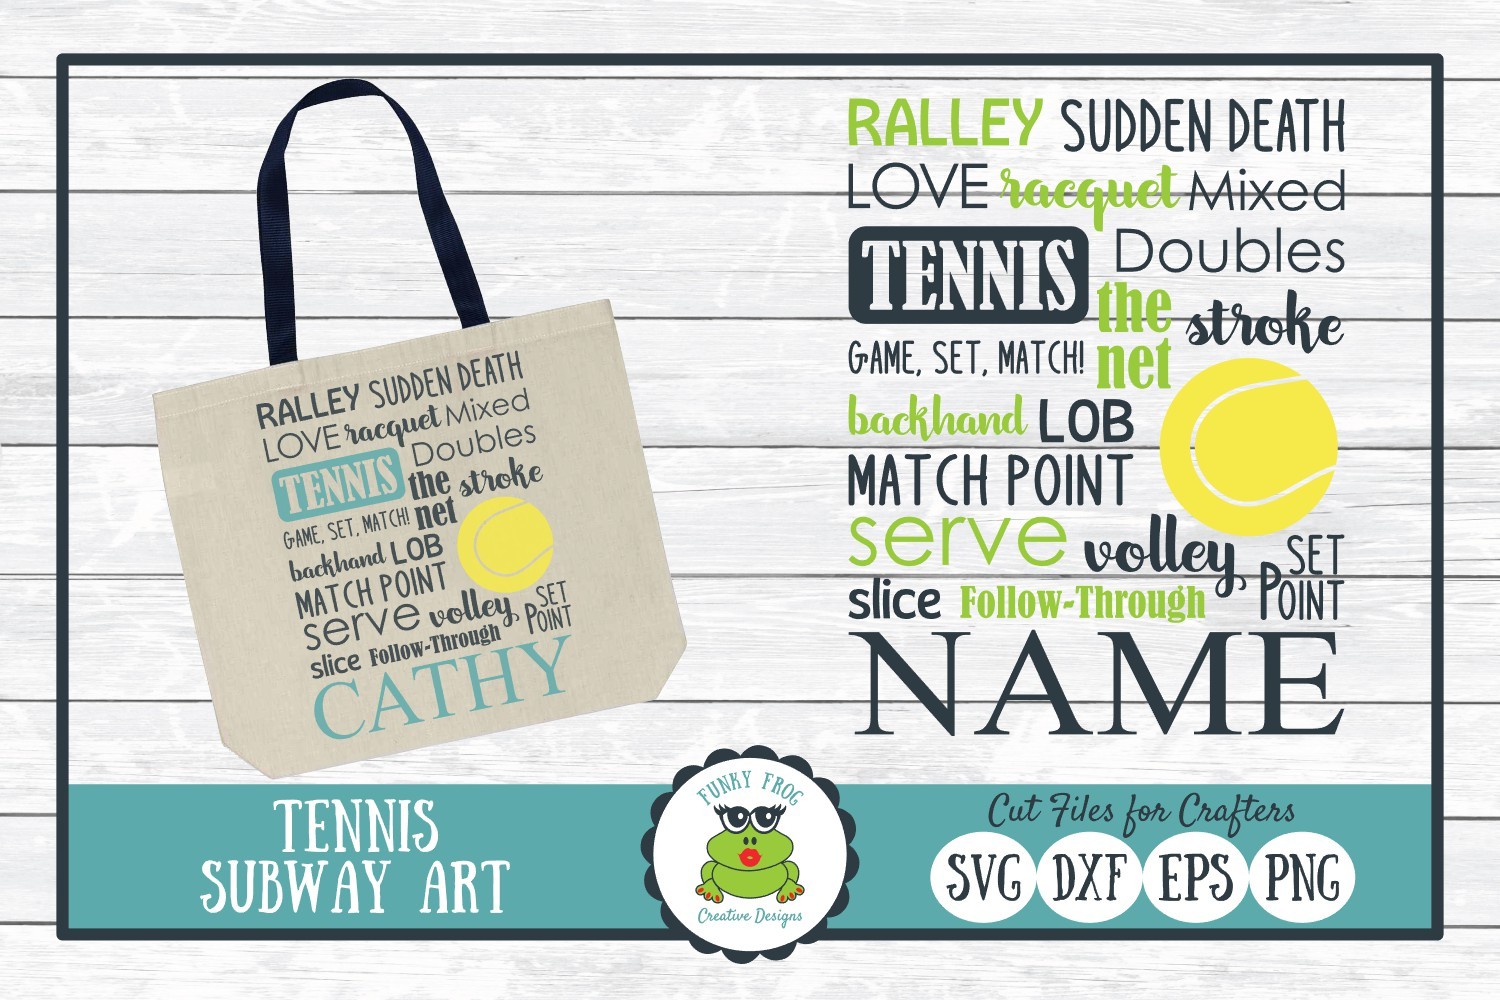 Download Free Tennis Subway Art Graphic By Funkyfrogcreativedesigns Creative for Cricut Explore, Silhouette and other cutting machines.